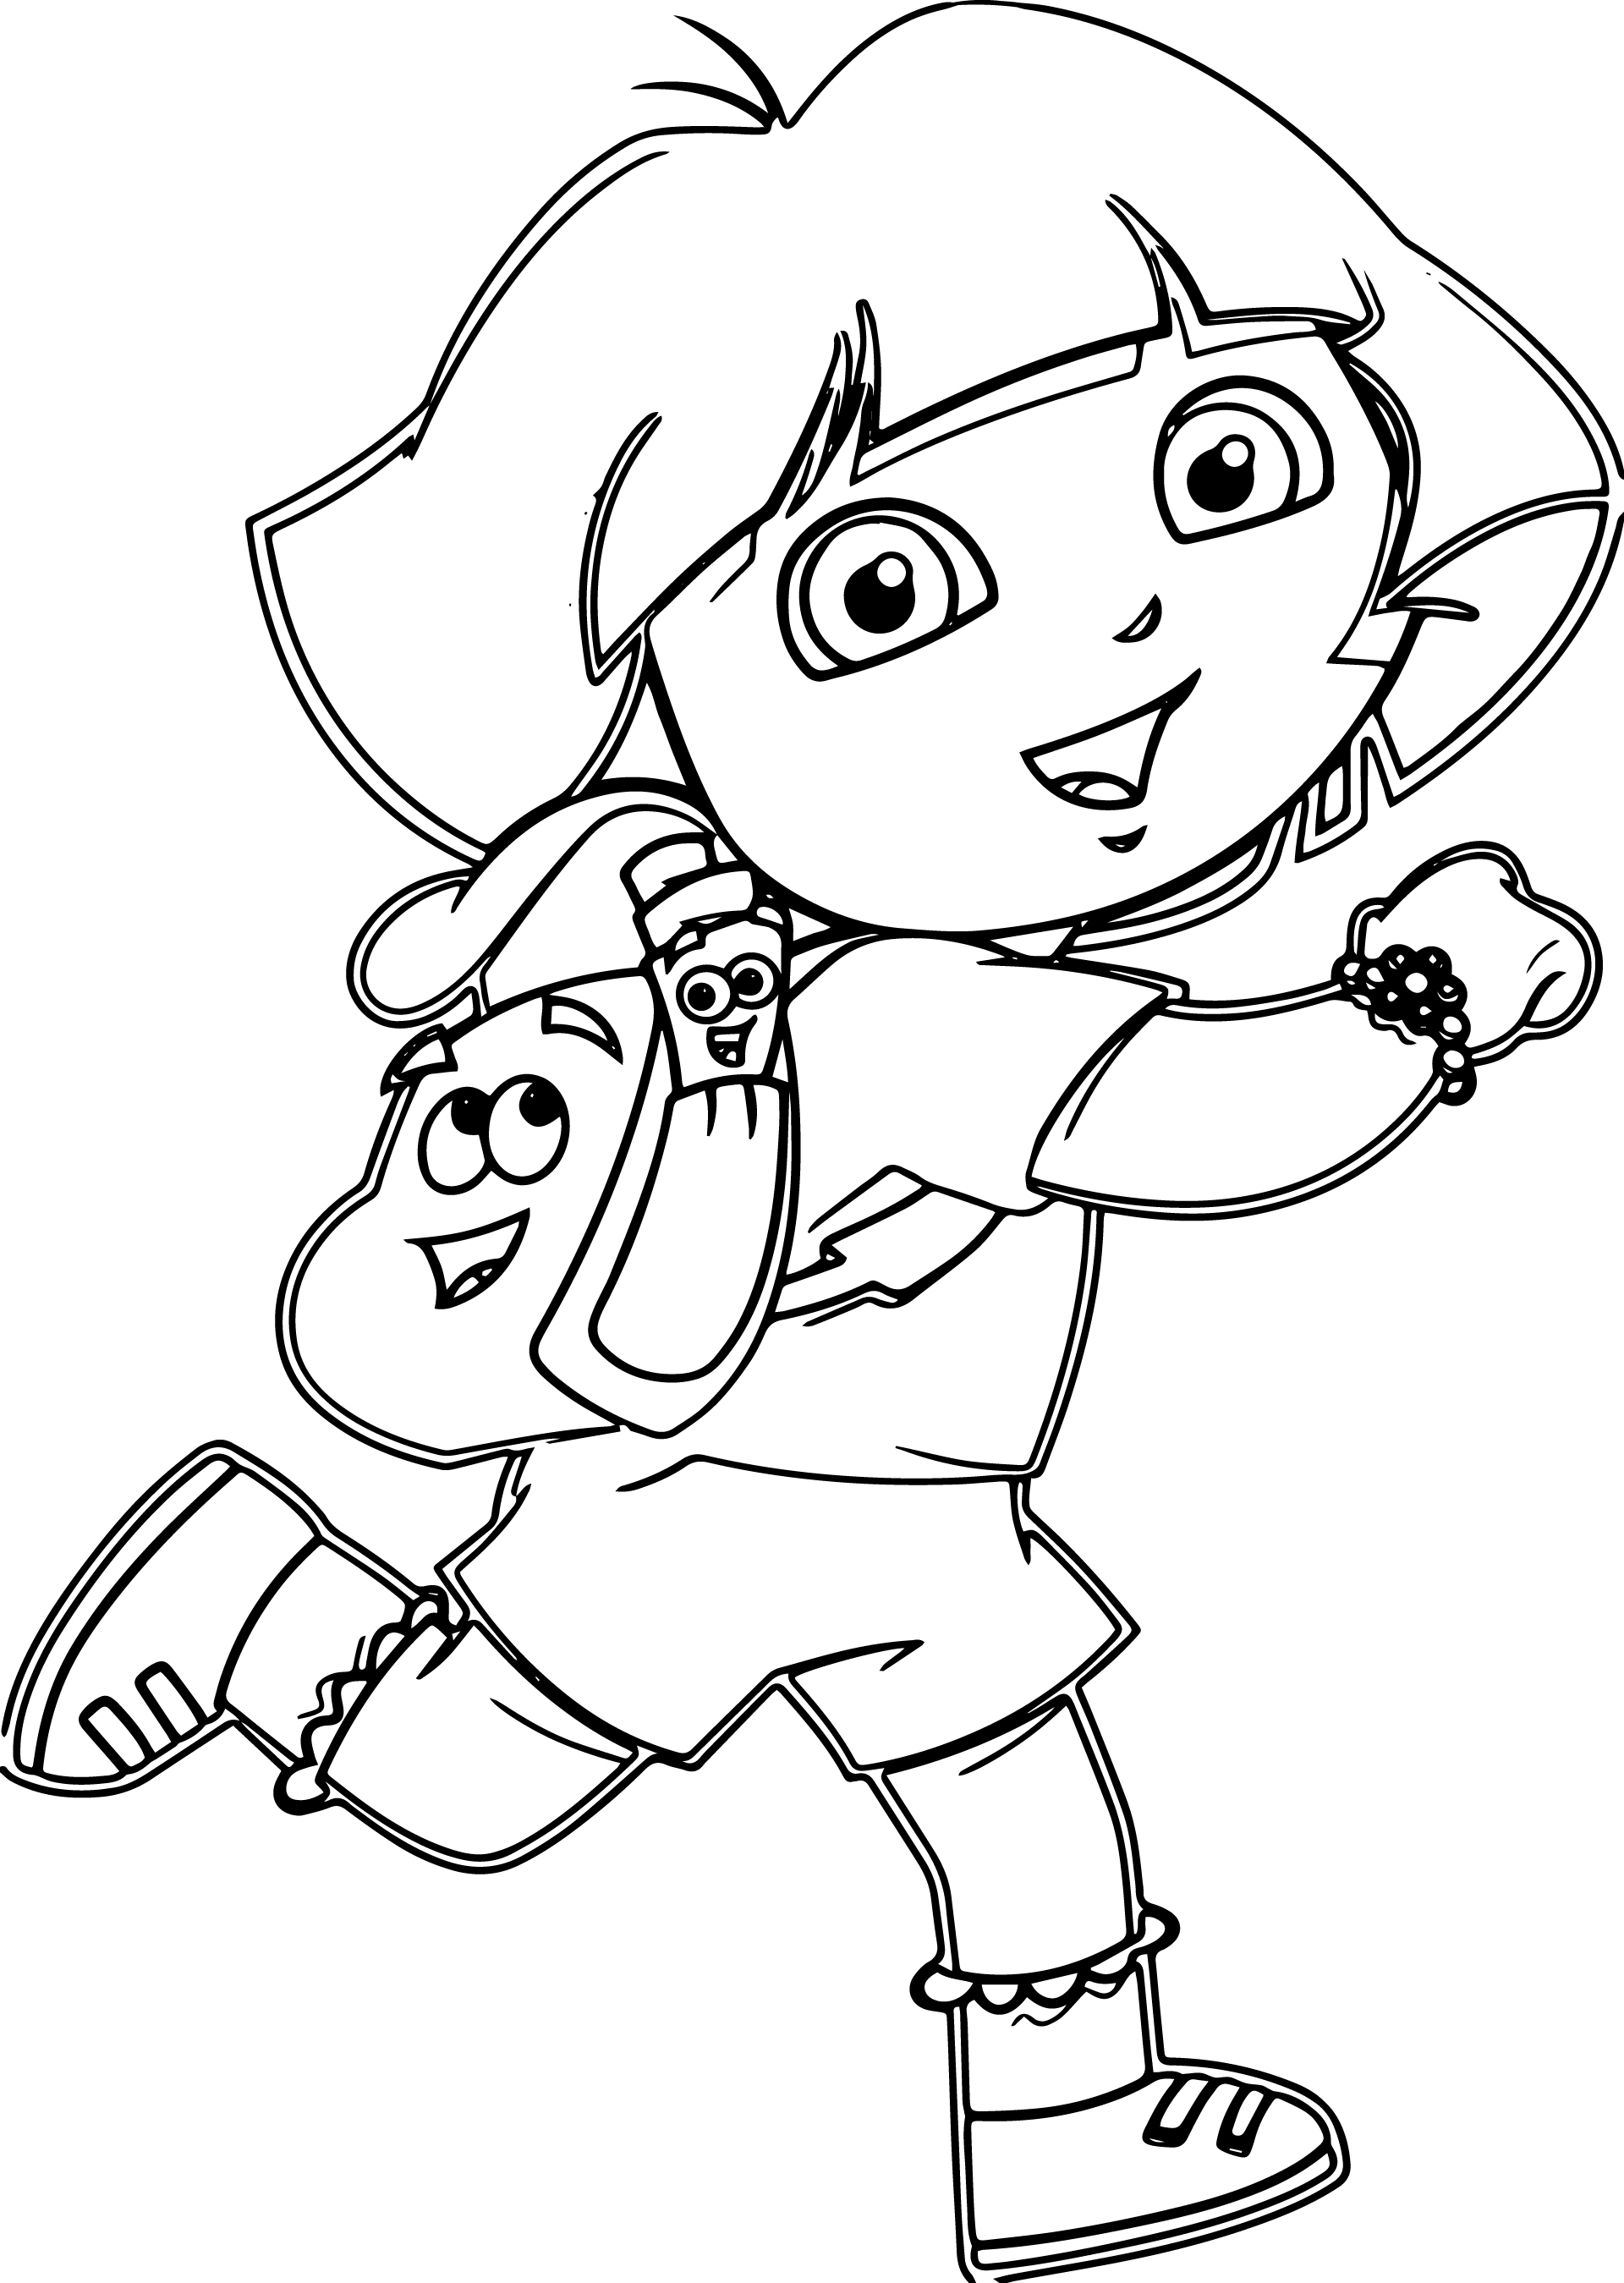 dora coloring pictures dora coloring pages diego coloring pages pictures coloring dora